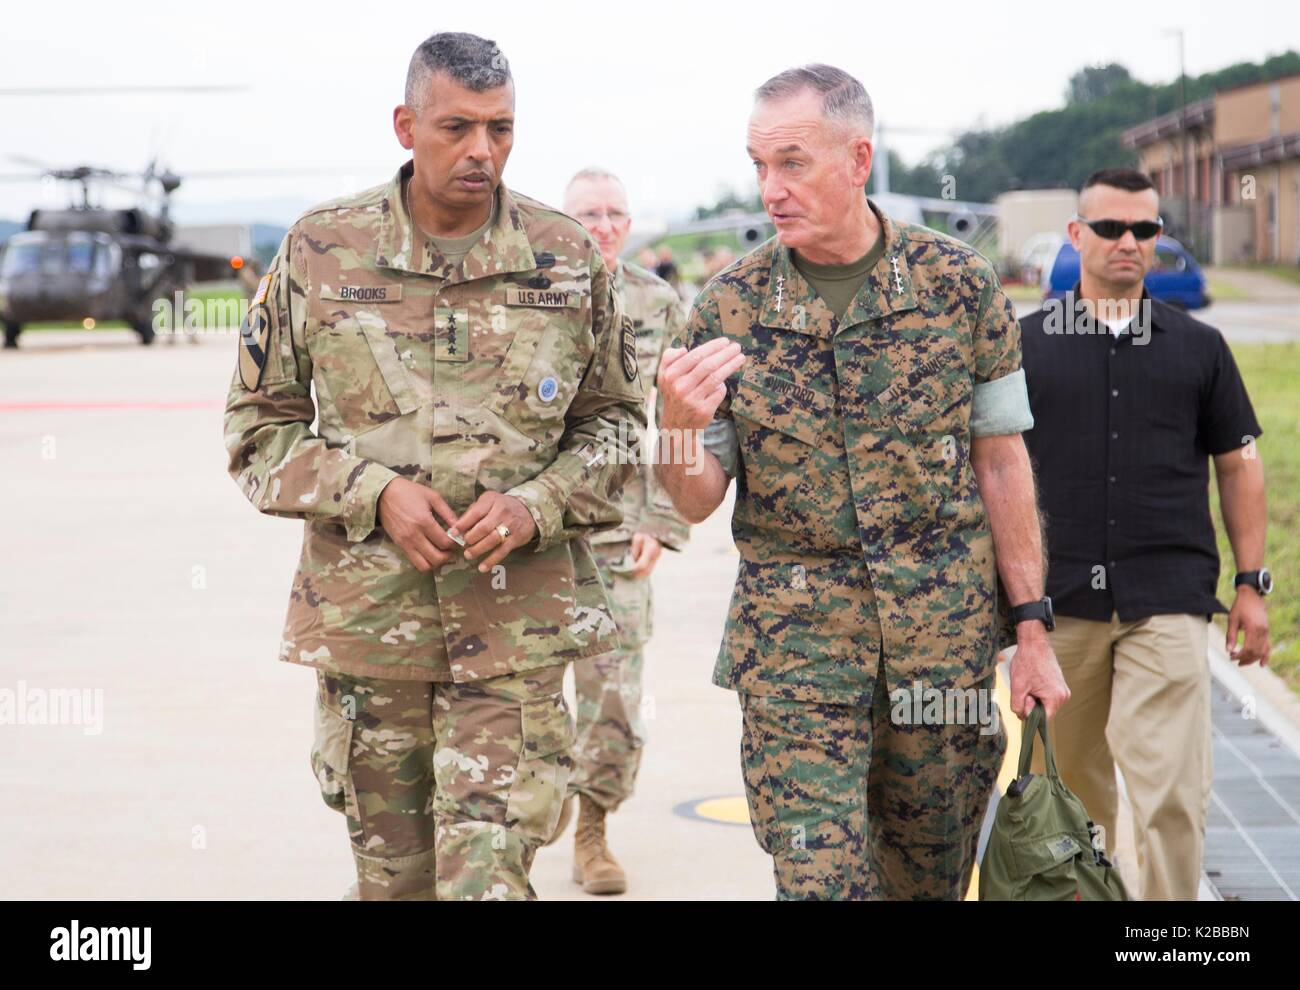 U.S. Chairman of the Joint Chiefs Gen. Joseph Dunford, right, is escorted by Army Gen. Vincent Brooks, commander, U.S. Forces Korea, on arrival at Osan Air Base August 13, 2017 in Pyeongtaek, Gyeonggi-do, South Korea. Dunford is meeting military leaders in the Asia-Pacific region as tensions rise with North Korea over nuclear and ballistic missiles tests. - Stock Image